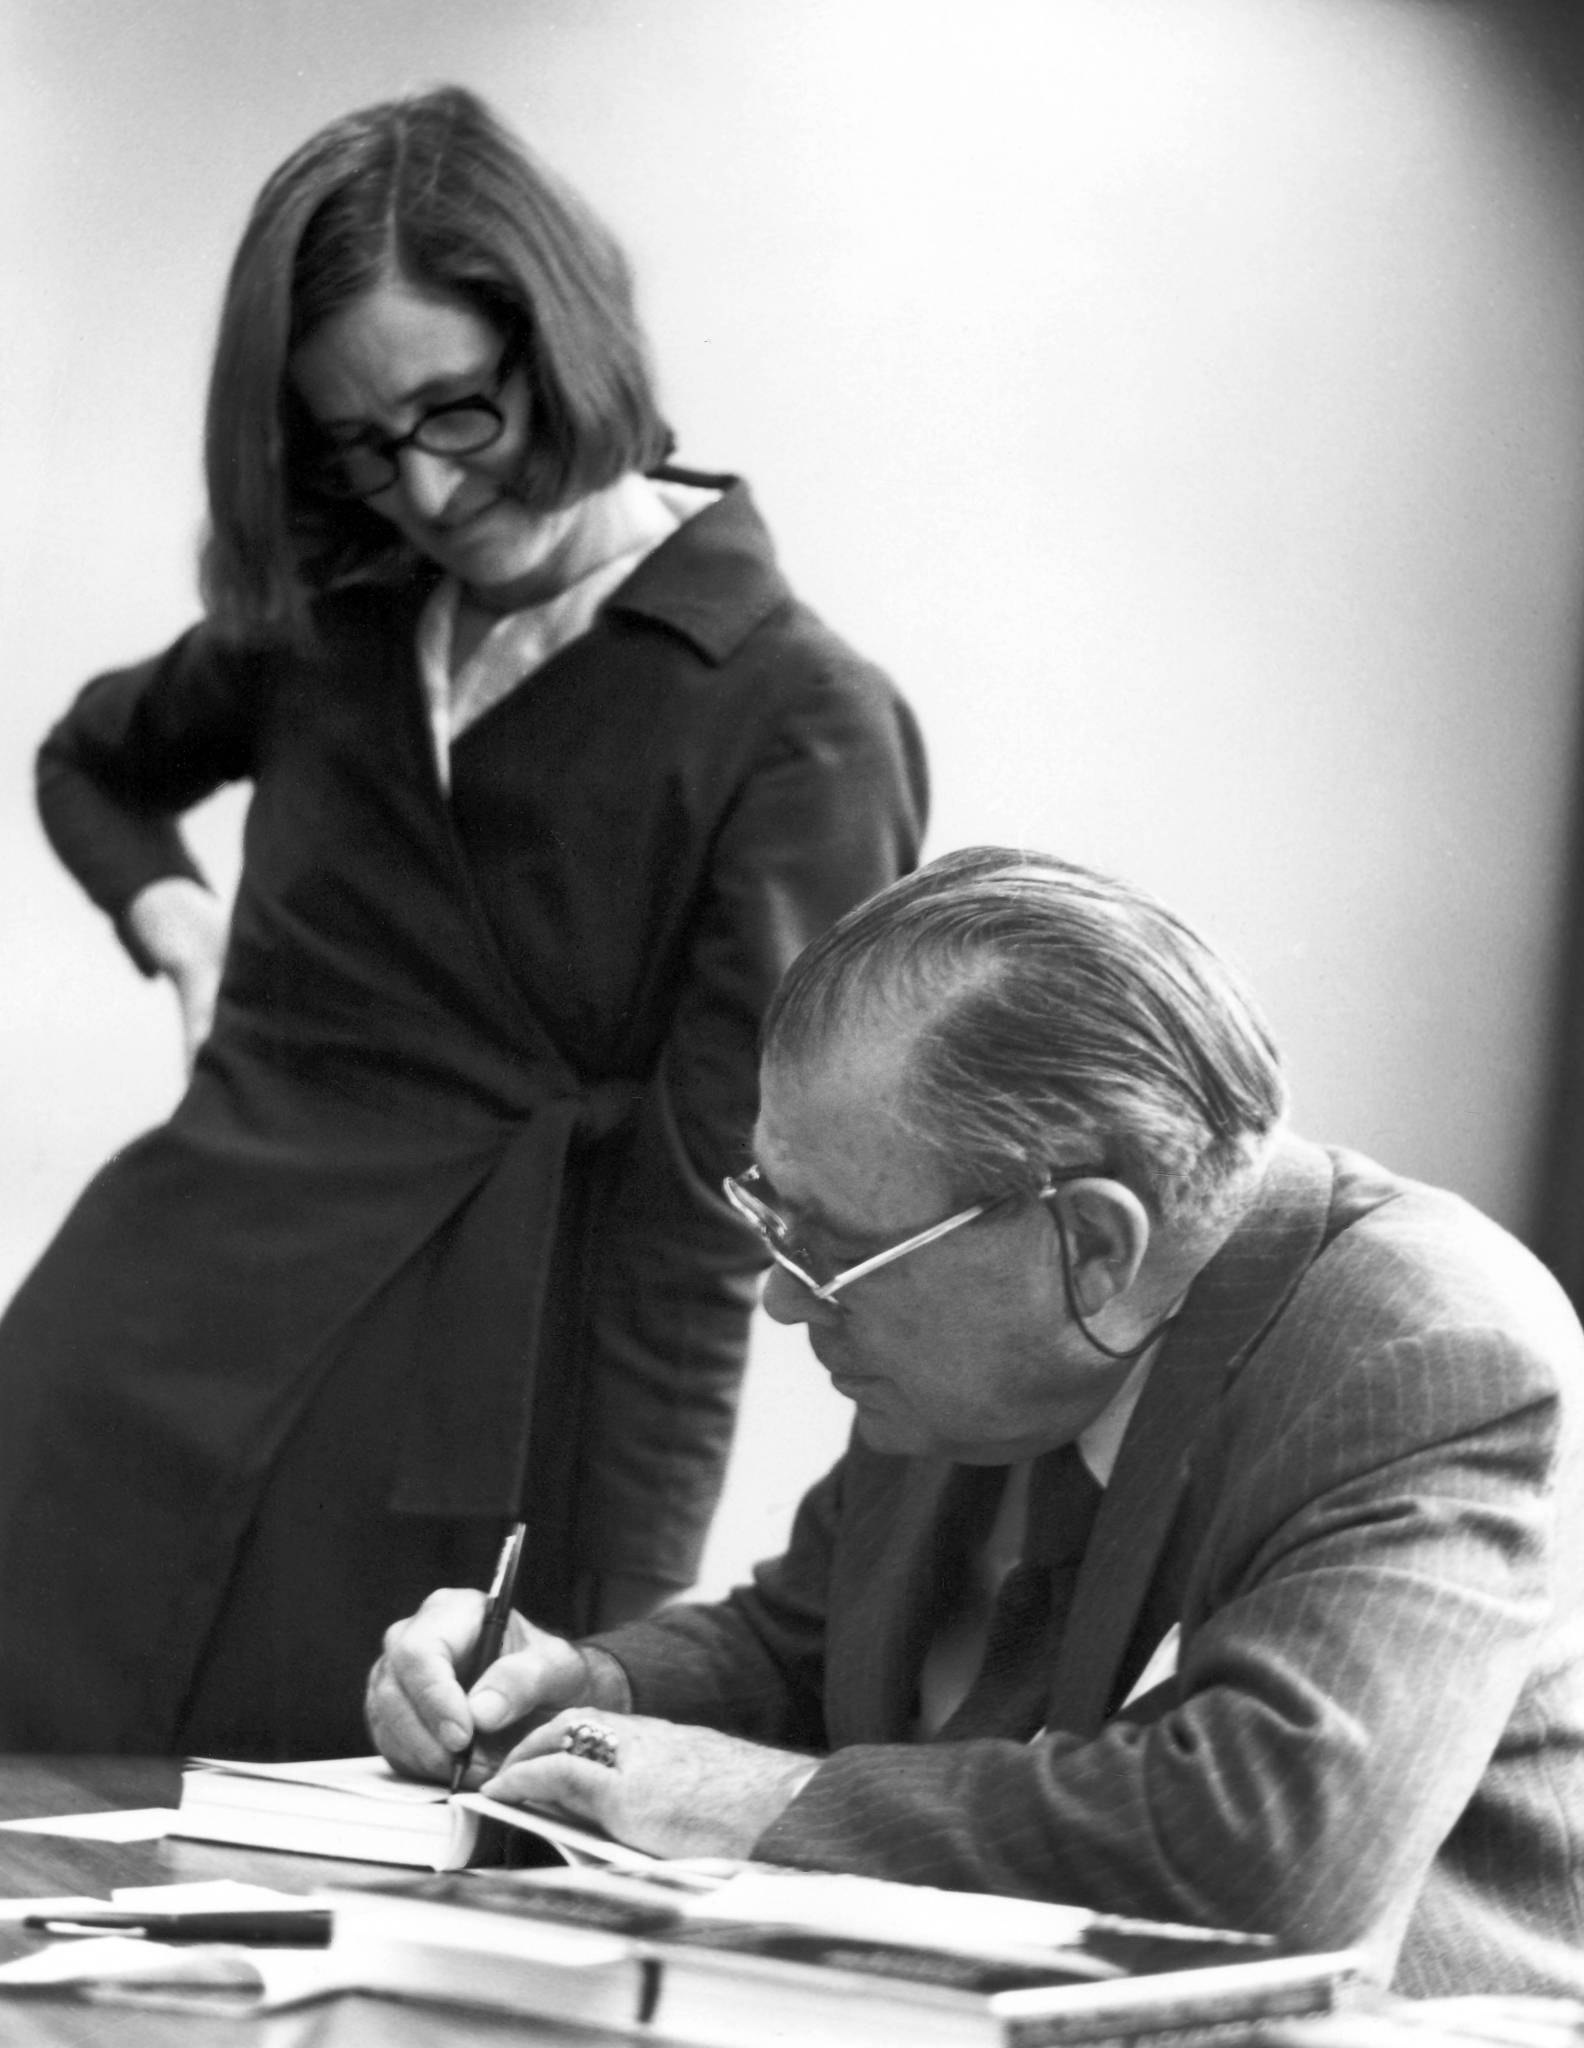 Natalie de Blois was an associate partner at Chicago architecture firm Skidmore, Owings & Merrill in the 1960s.